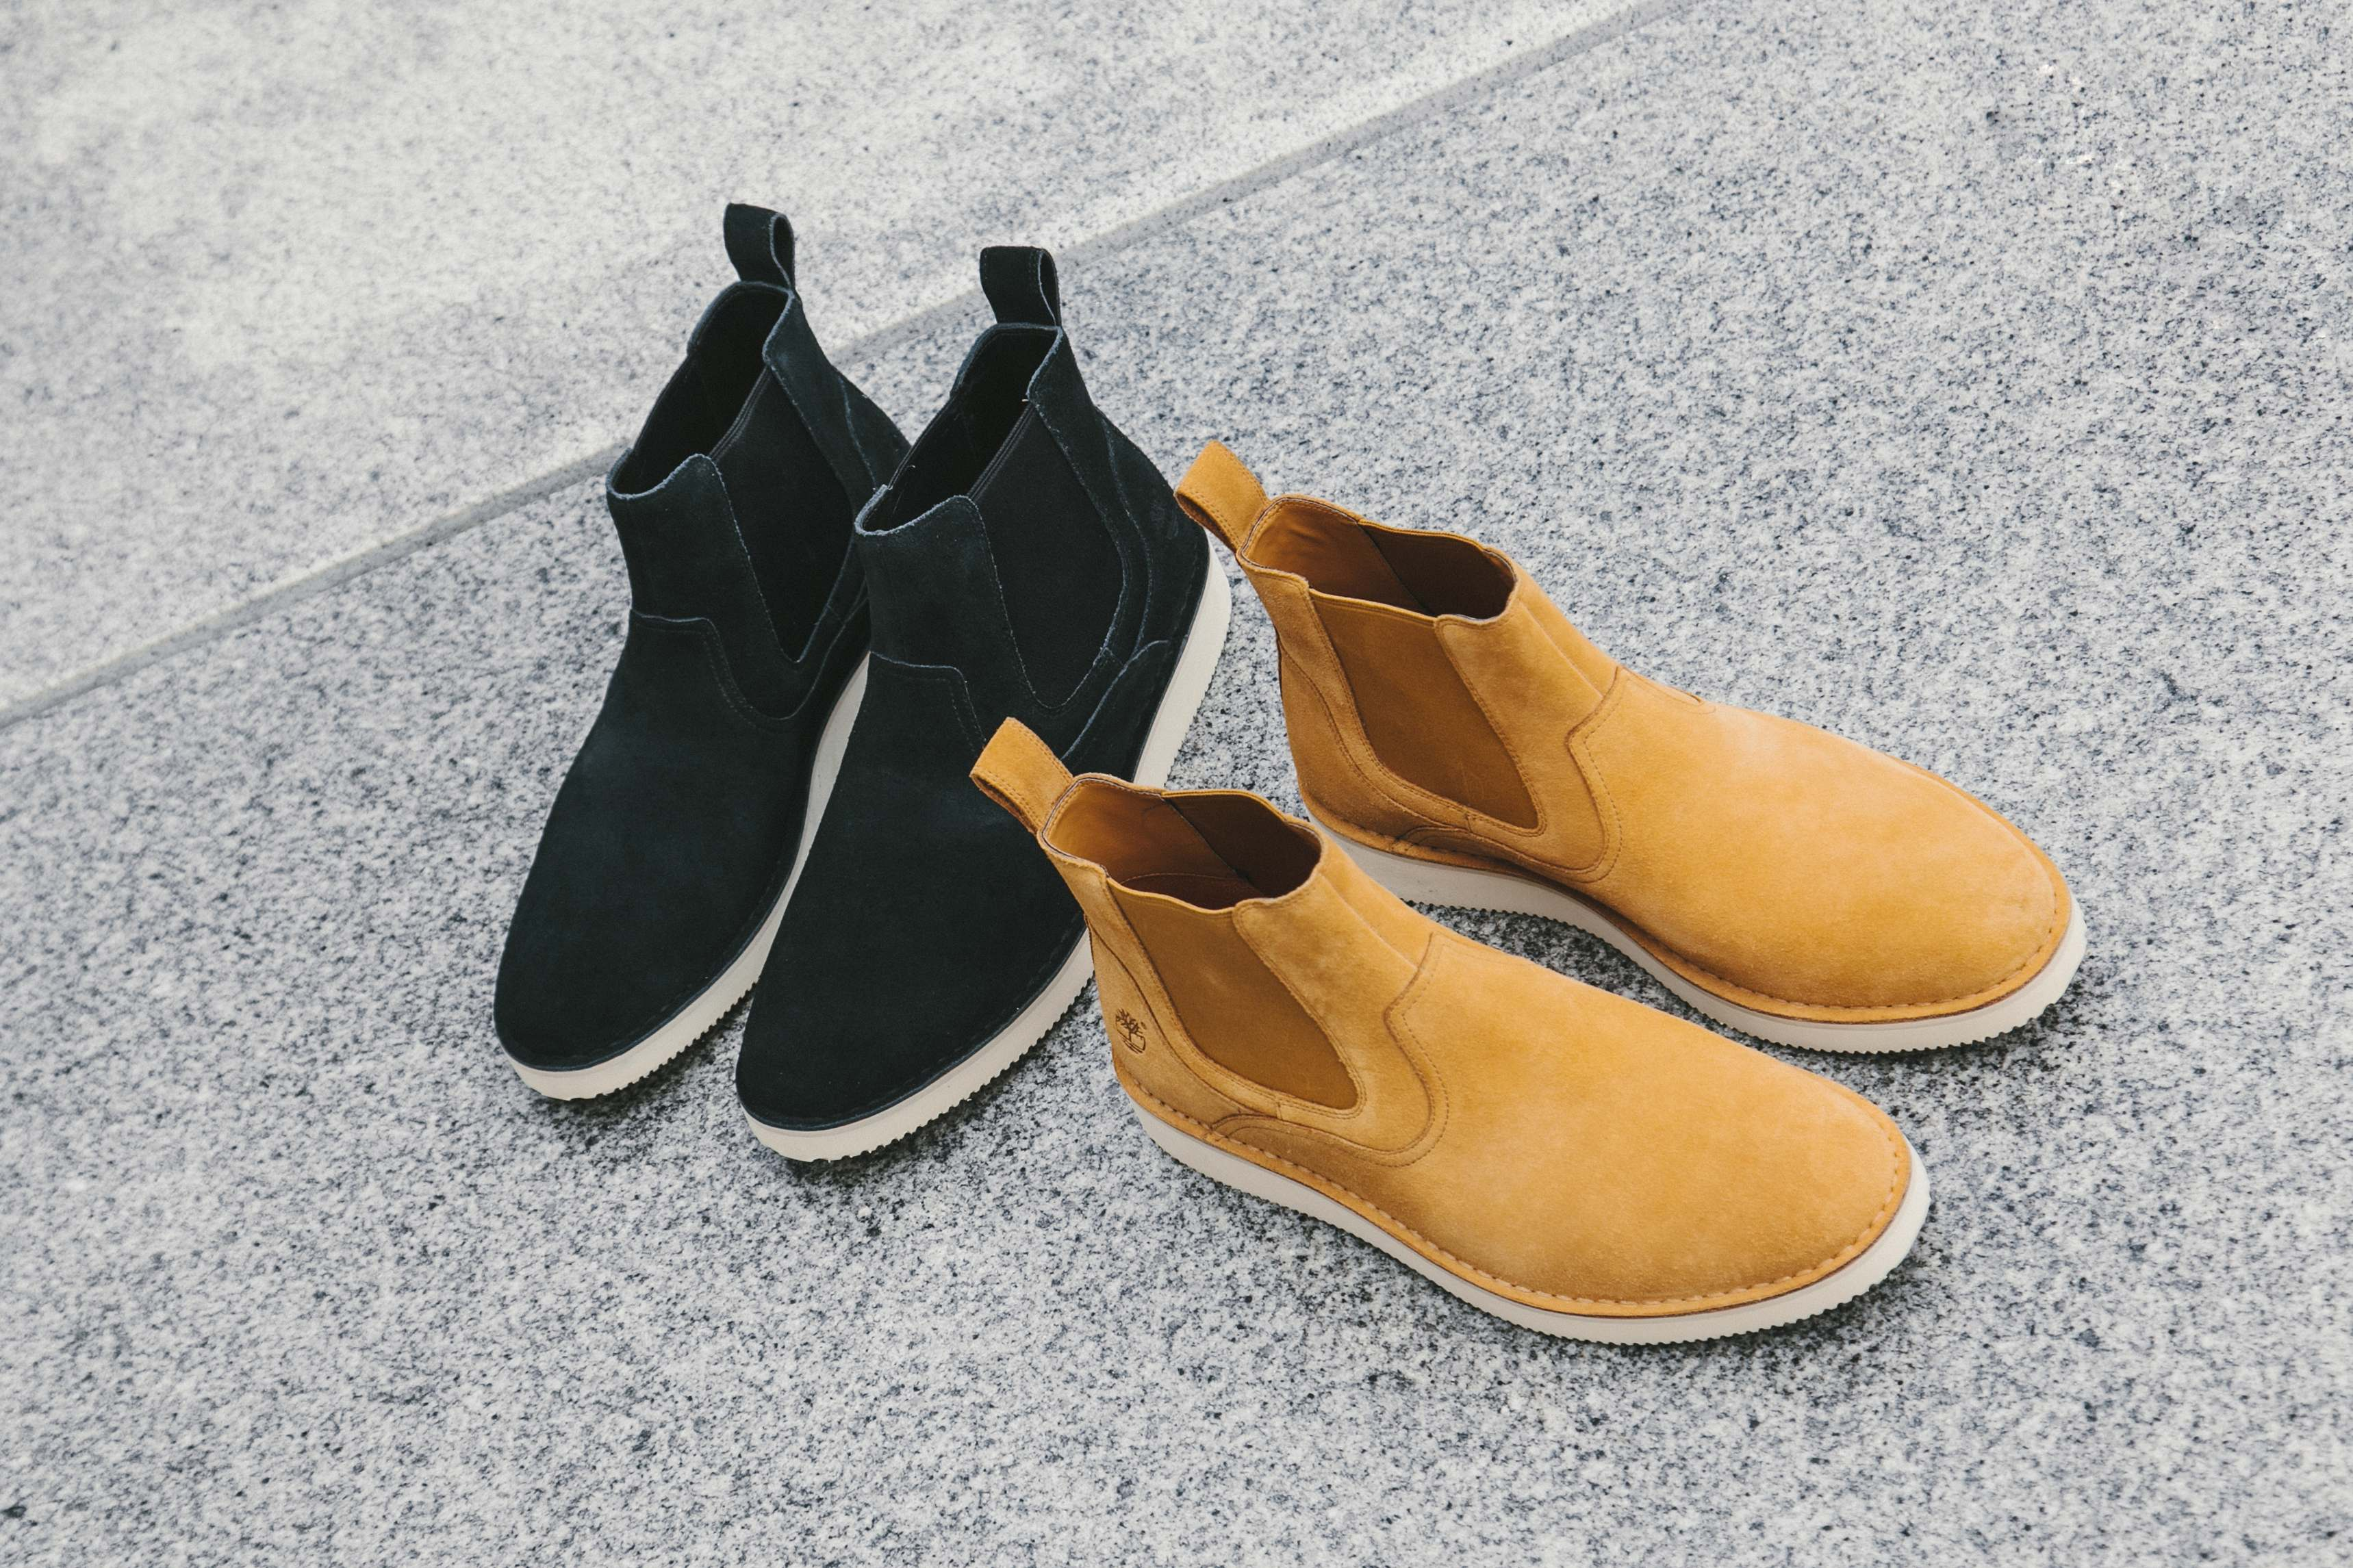 Timberland X Publish 8